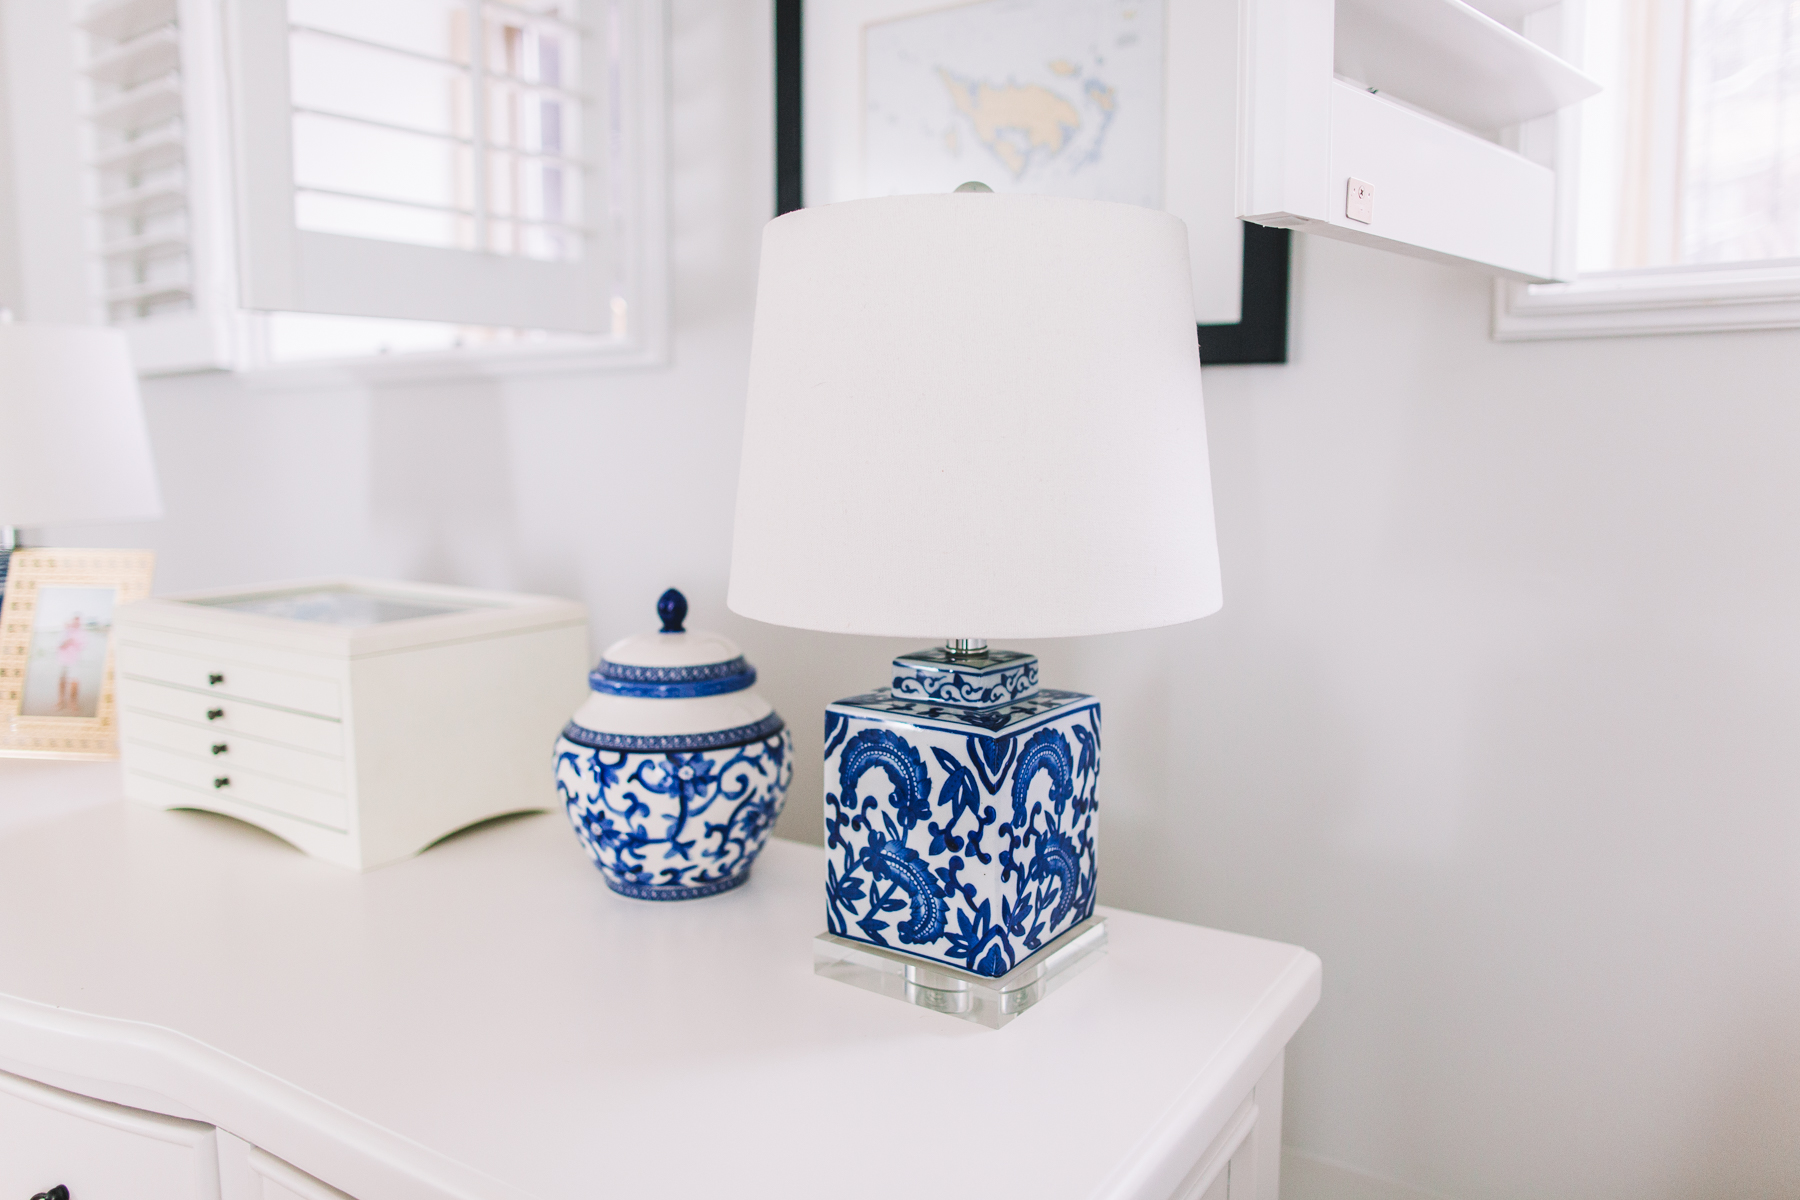 Larger Lamp for Nightstands